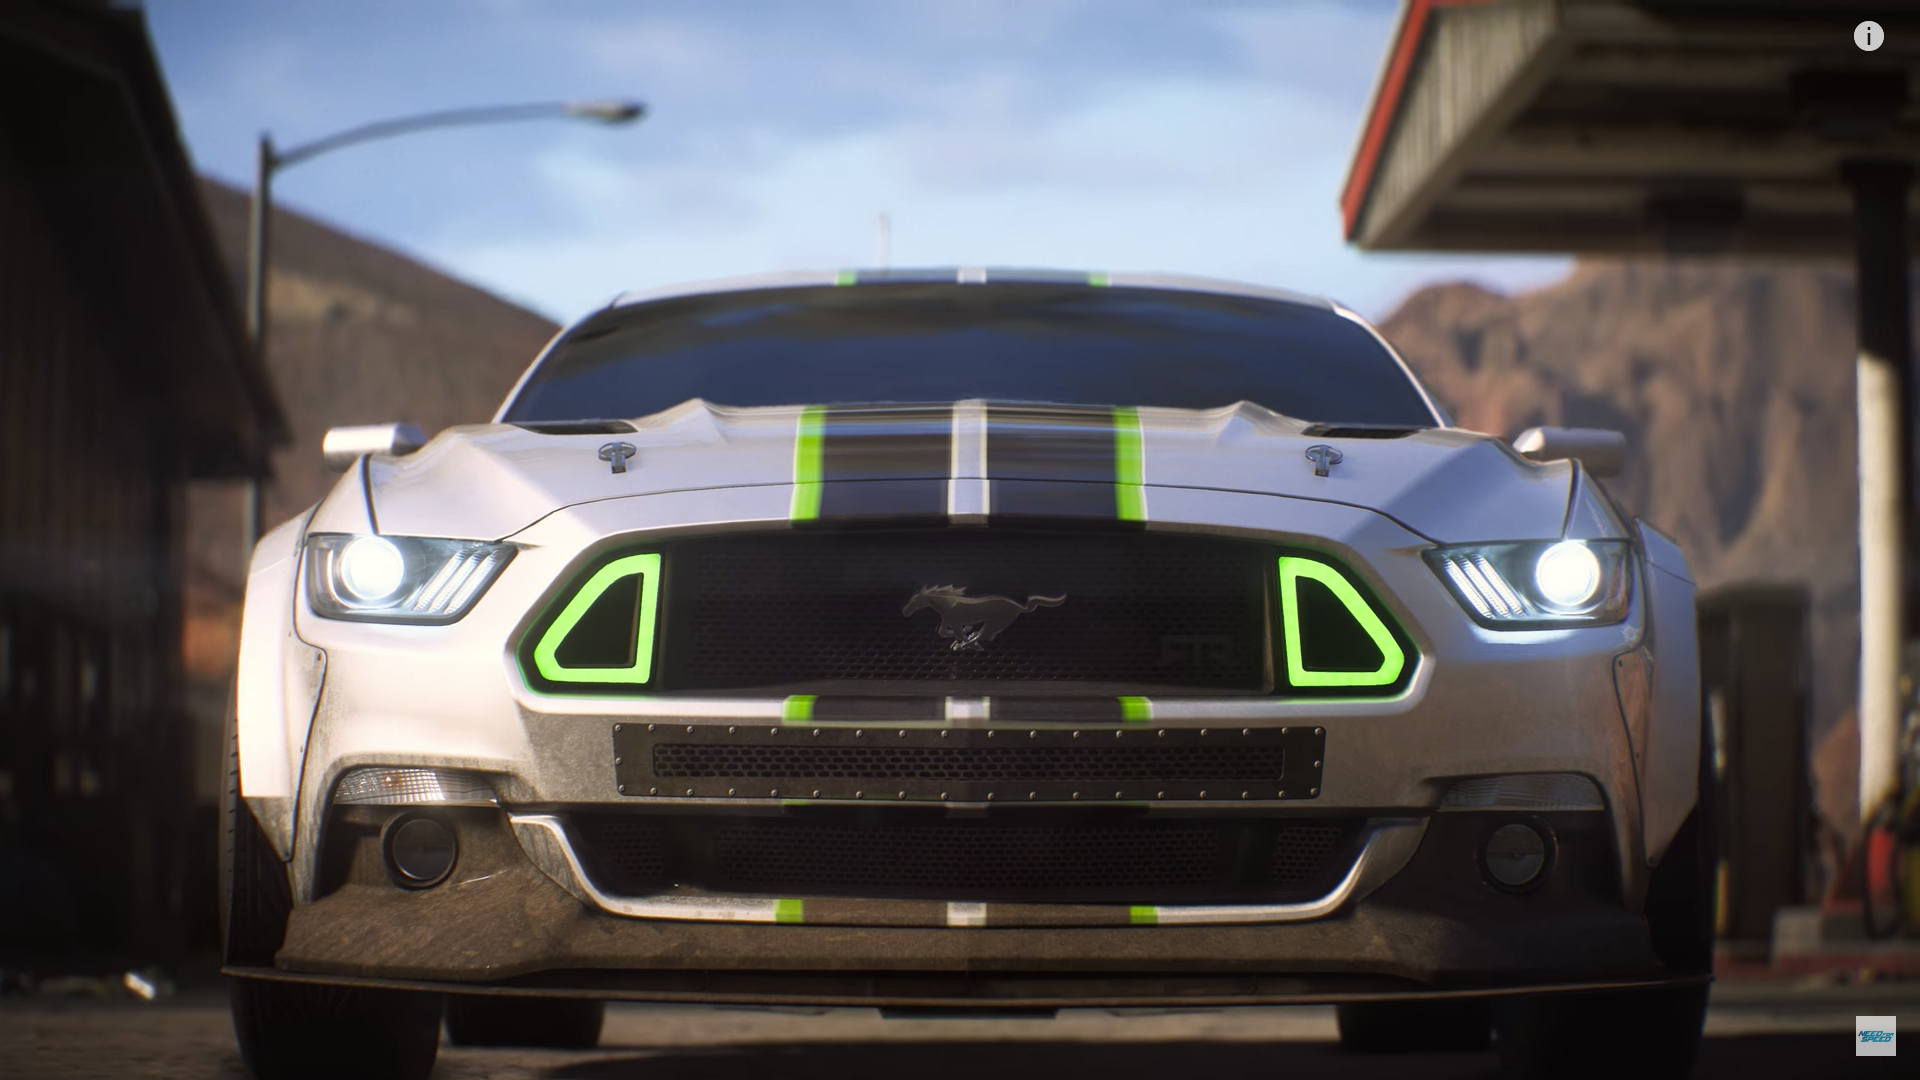 Ford Mustang Gt Nfs Payback Arabalar Need For Speed Araba